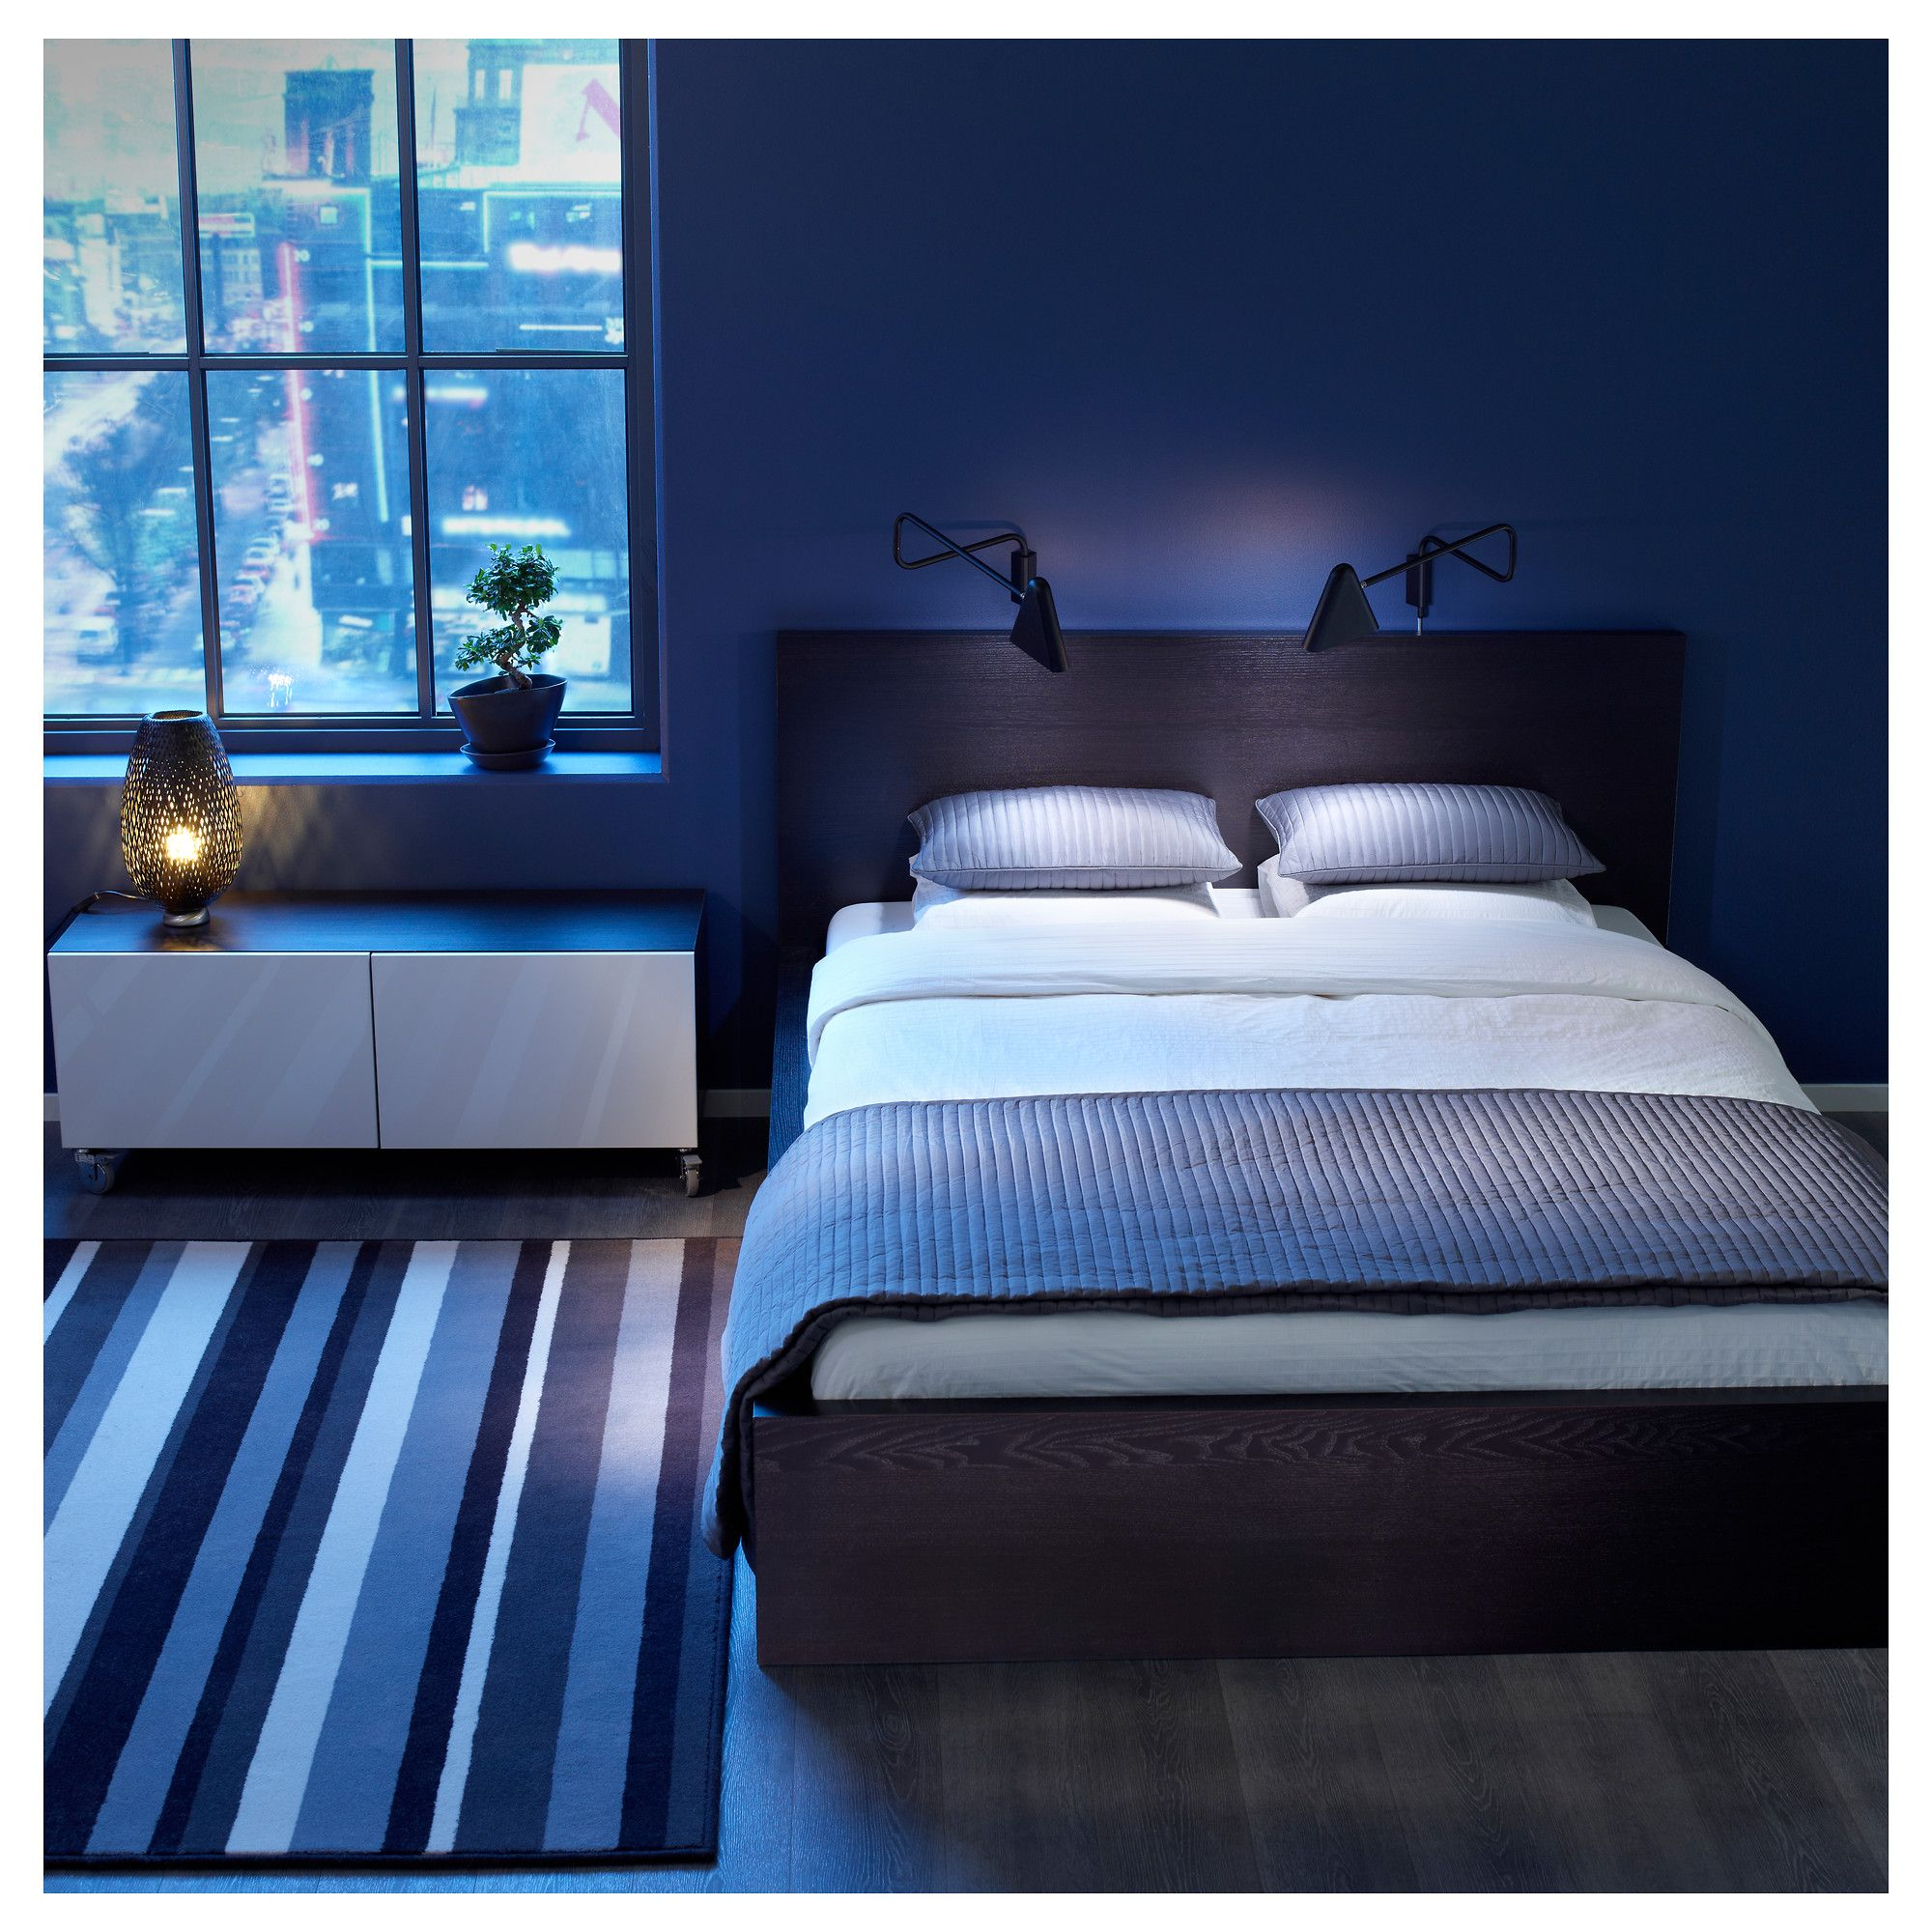 Bedroom ideas for teenage girls dark blue - Appealing Small Girls Bedroom Idea With Espresso Wooden Twin Bed Frame And White Bedding Set And Small Girls Bedroomsnavy Blue